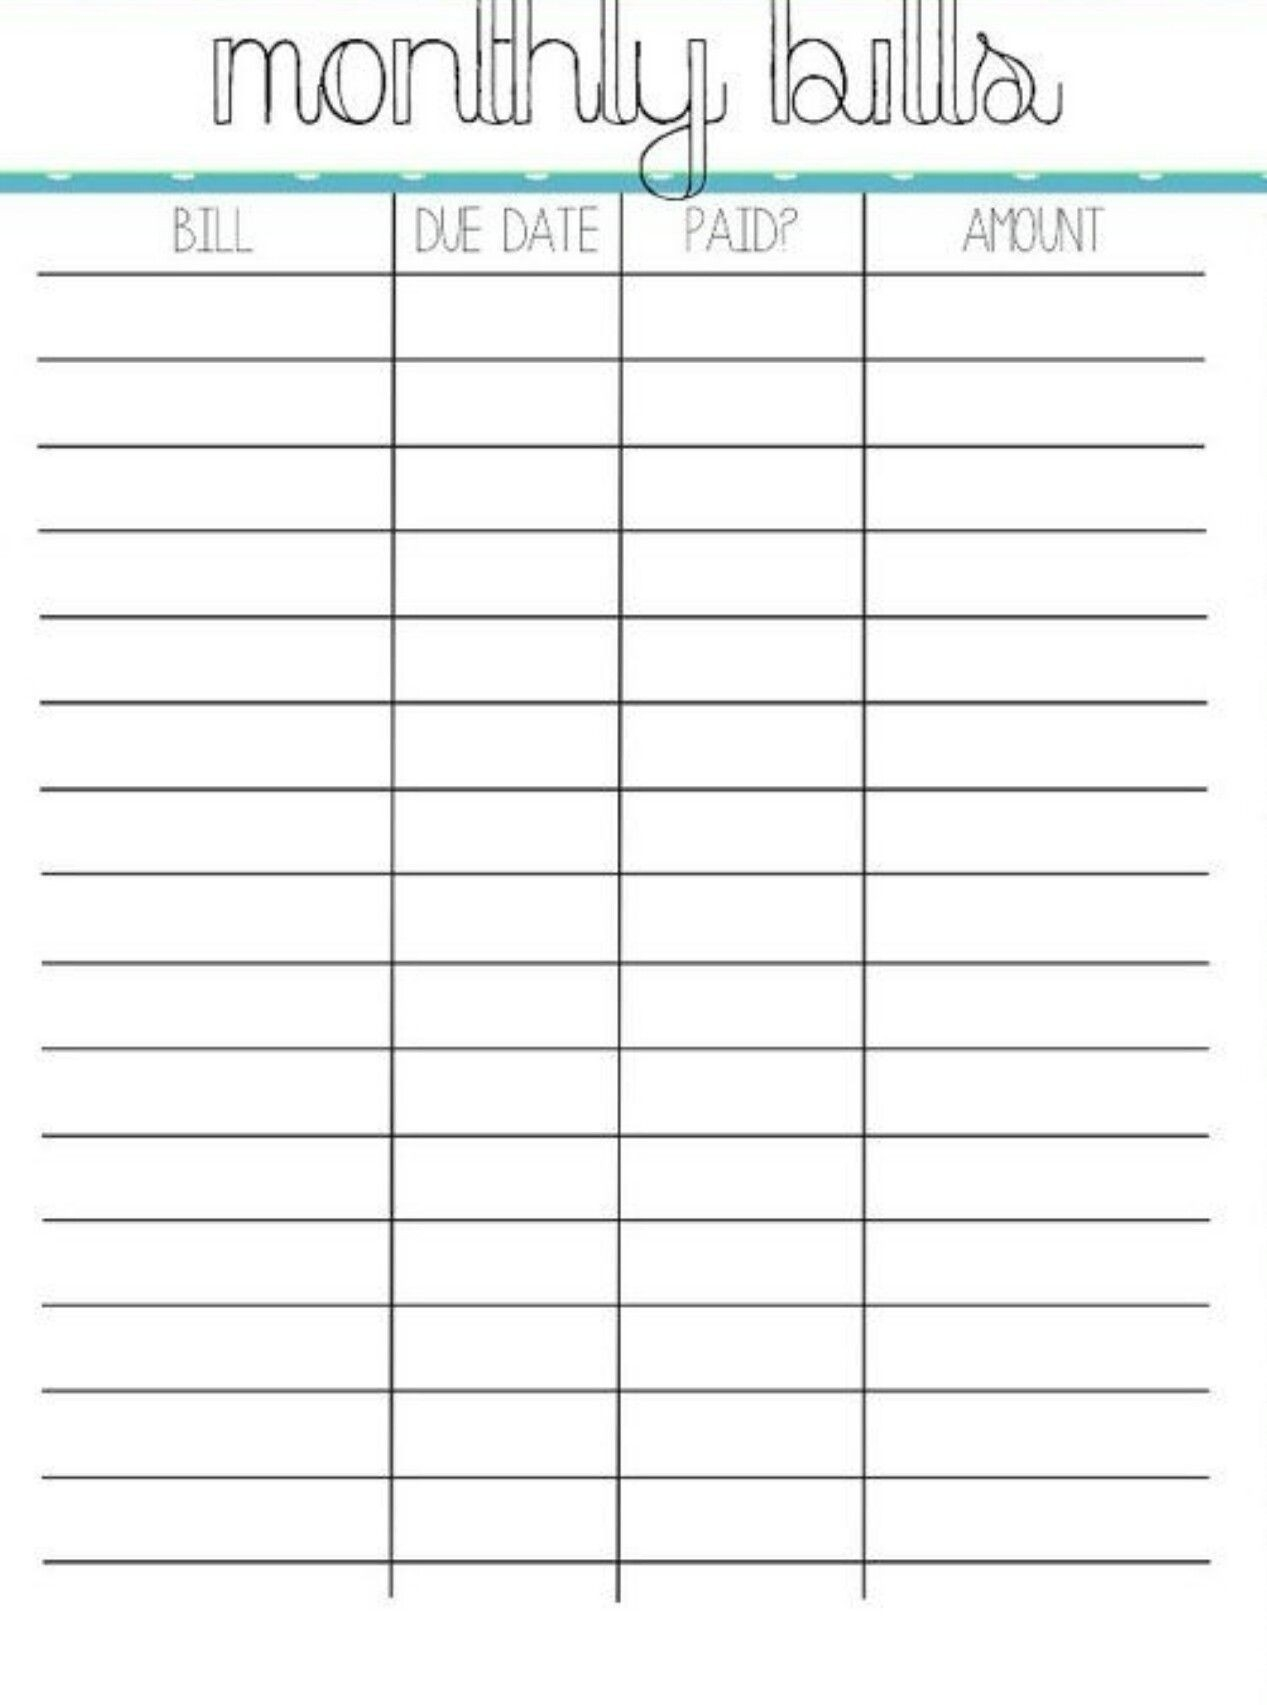 Pin By Crystal On Bills | Organizing Monthly Bills, Bill-Monthly Bill Chart Printable Free